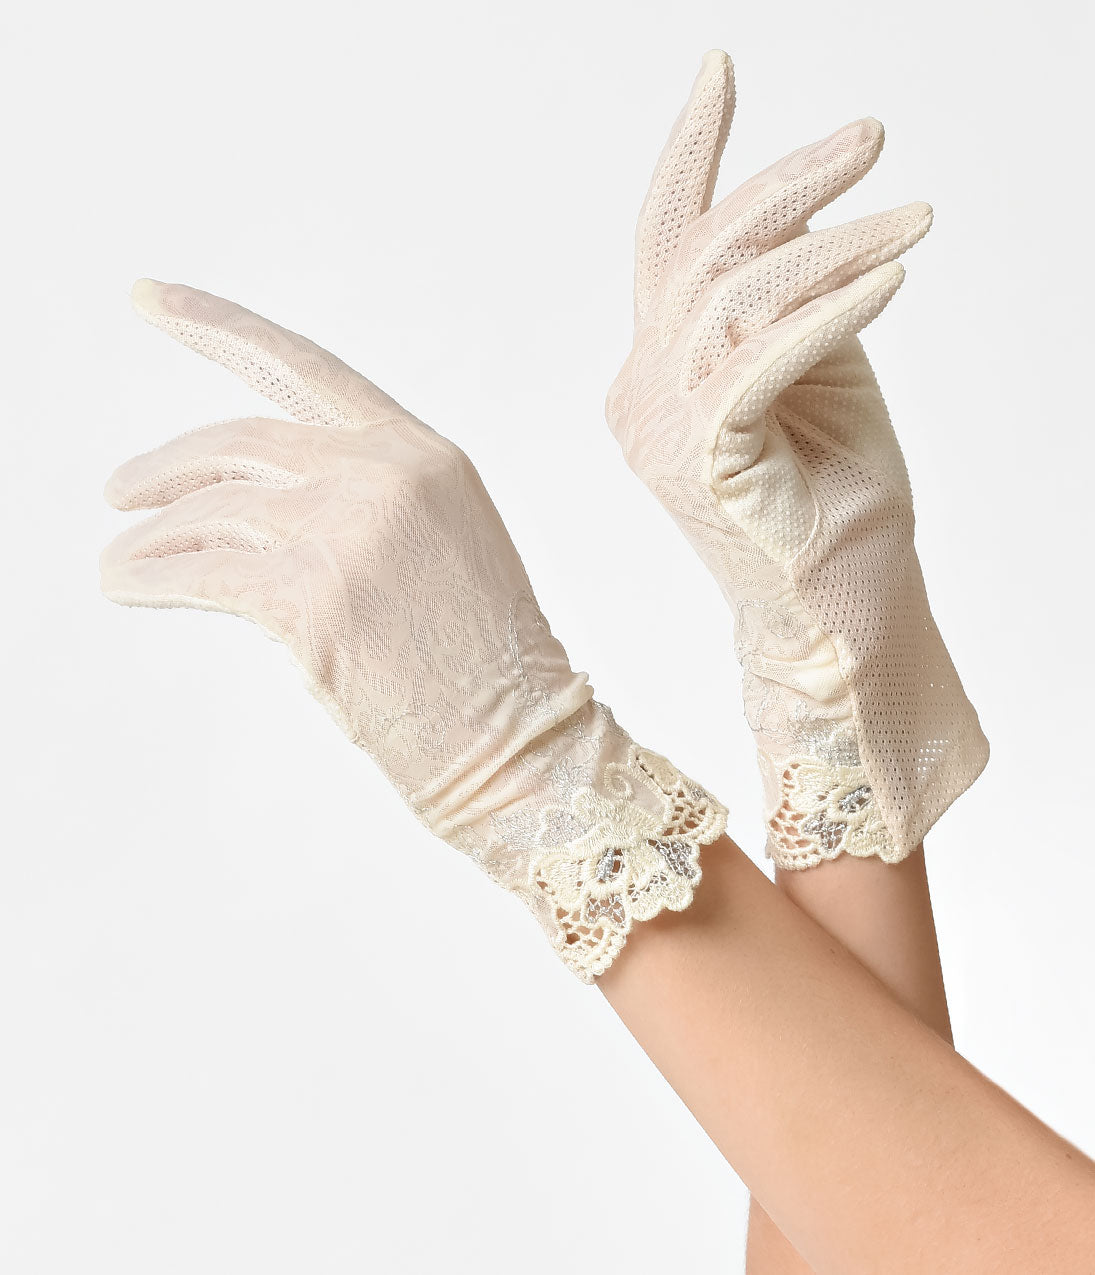 Vintage Style Gloves- Long, Wrist, Evening, Day, Leather, Lace Unique Vintage Cream Lace  Silver Embroidery Wrist Gloves $20.00 AT vintagedancer.com